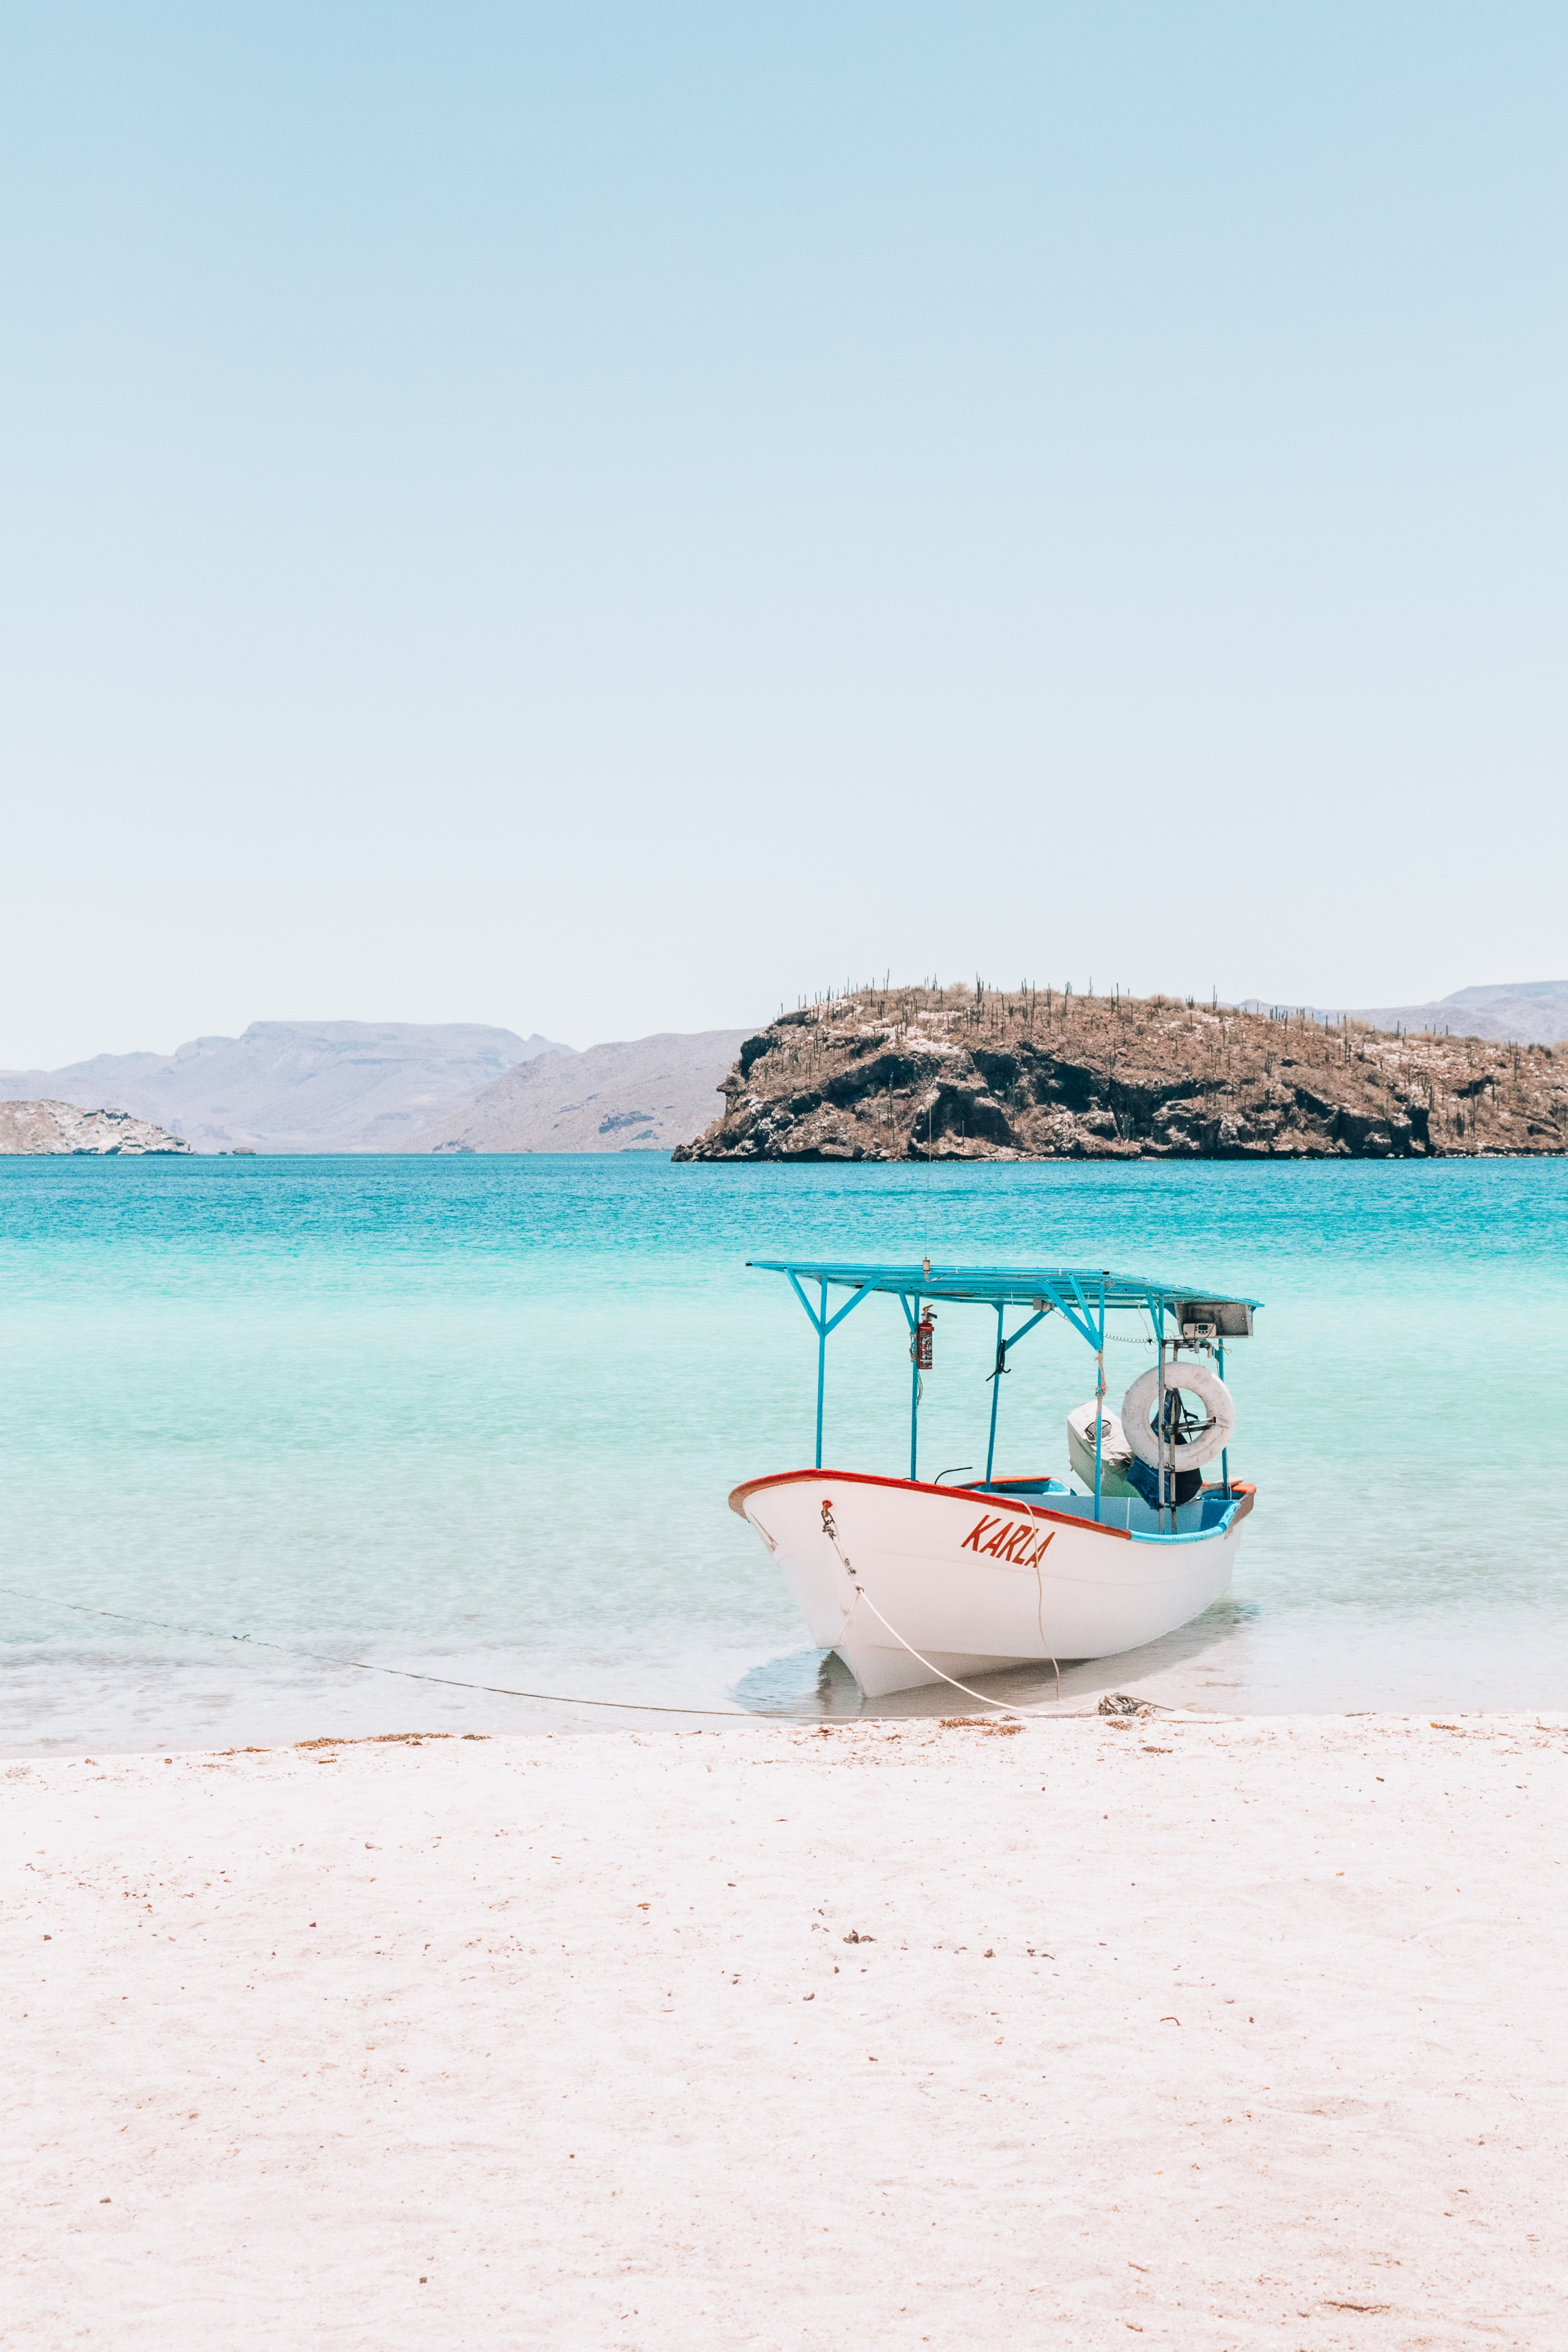 107303 Screensavers and Wallpapers Boat for phone. Download Nature, Water, Sea, Beach, Sand, Shore, Bank, Boat pictures for free